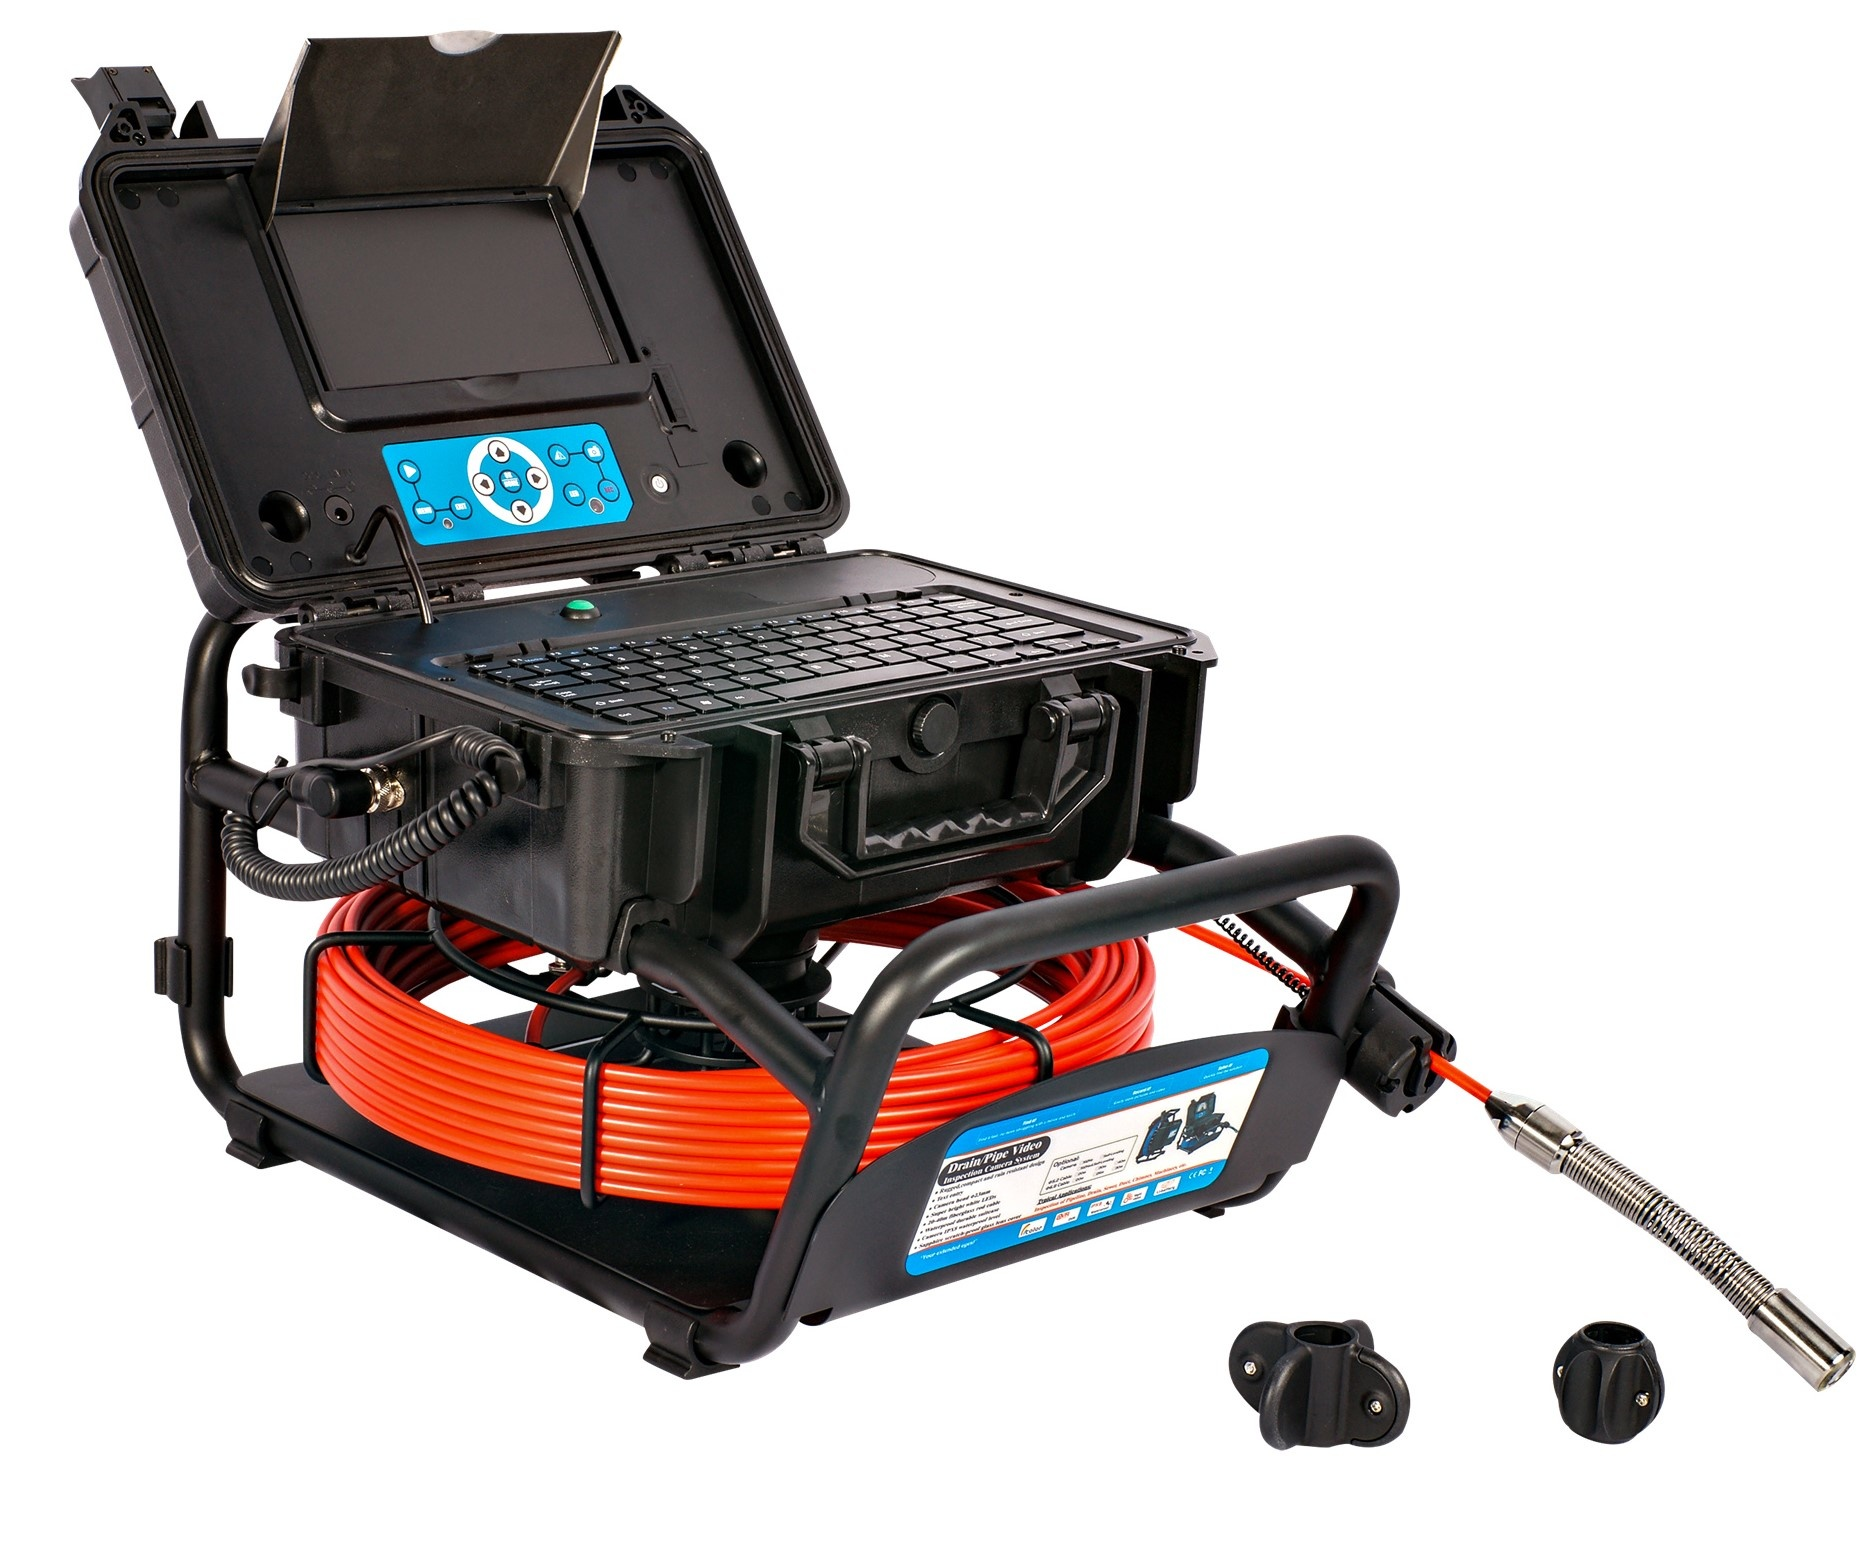 OMTools Sewer inspection camera with 35 meter cable and self-leveling  23 Ømm camera head